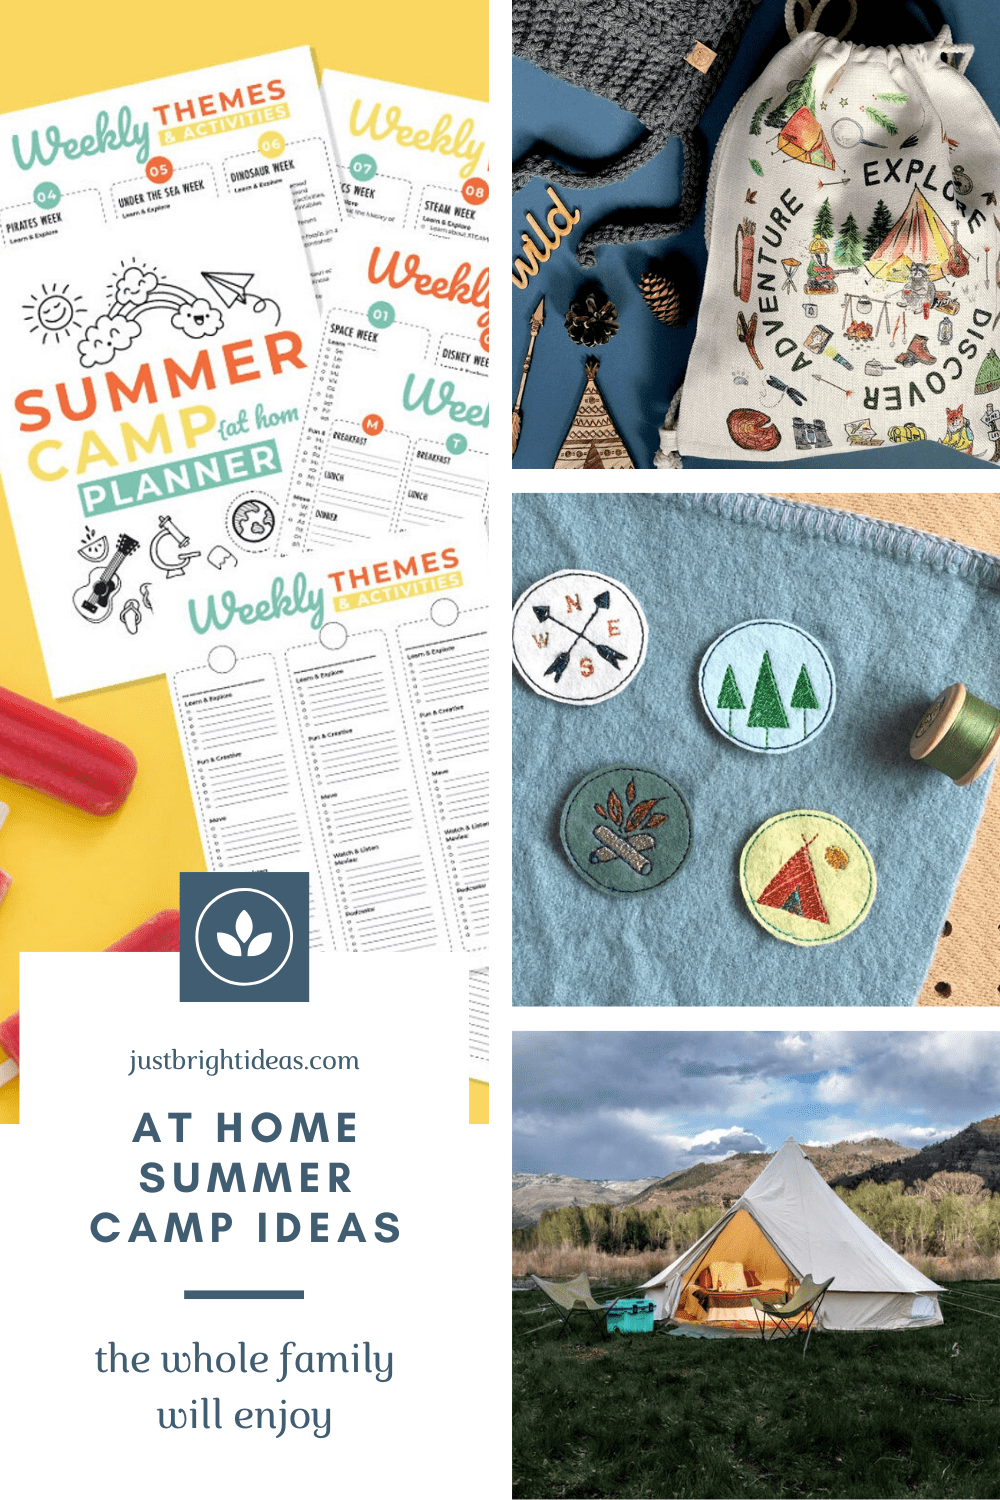 Are you thinking about planning an at home summer camp this year? Check out these fun activities for kids of all ages